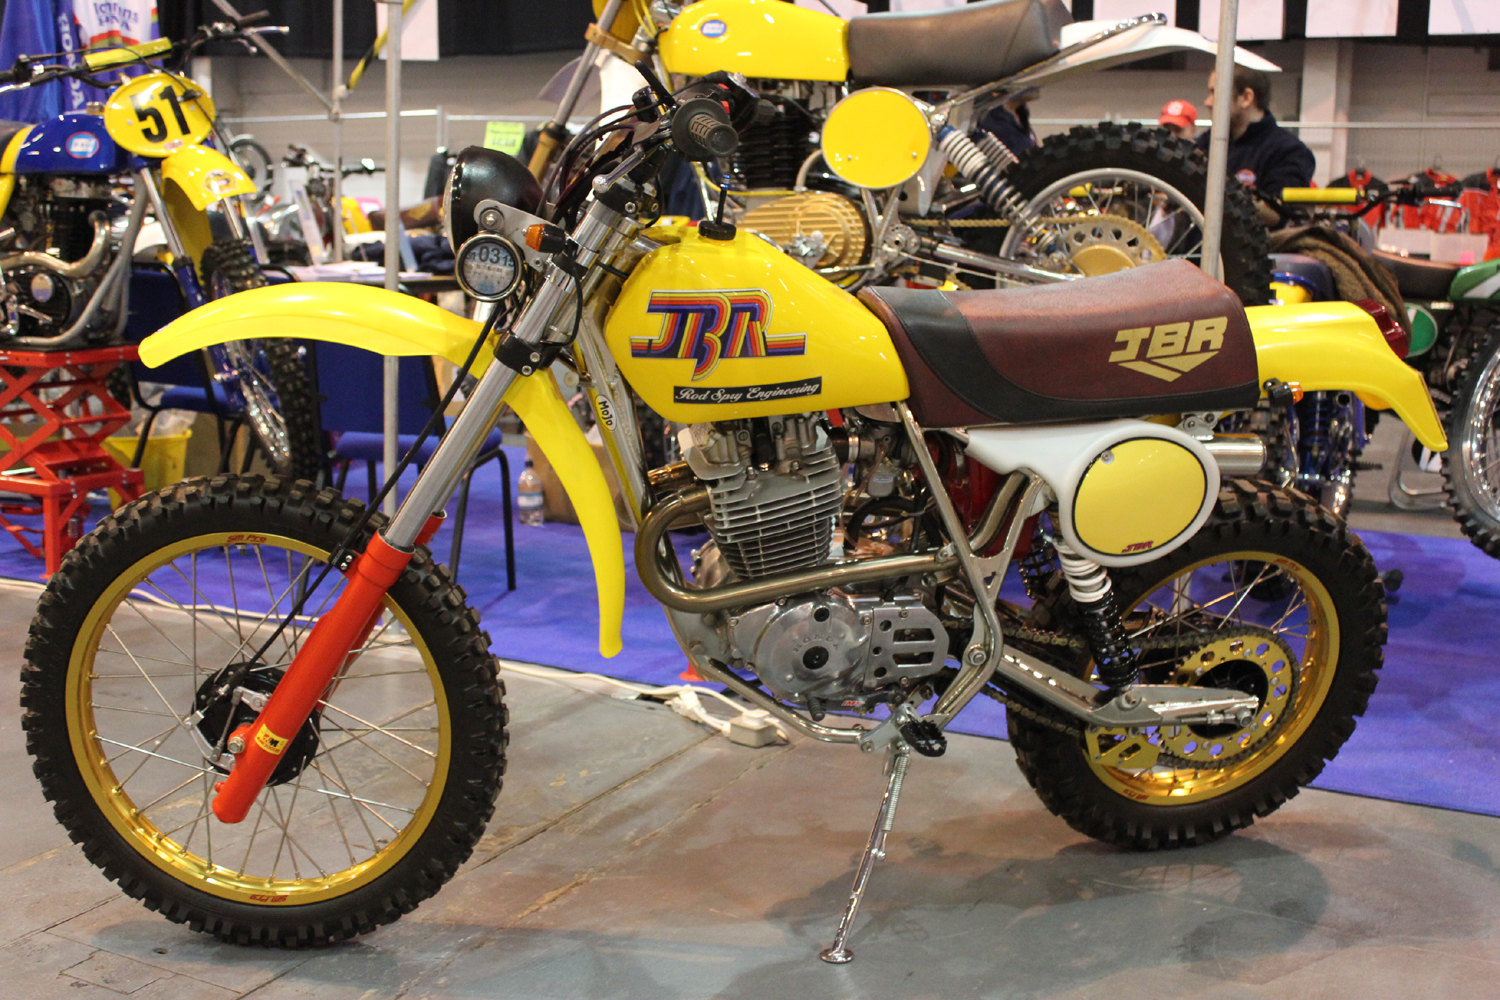 classicdirtbikerider.com-photo by Mr J-2015 Telford classic dirt bike show-JBR FOUR STROKE HONDA TWINSHOCK ENDURO